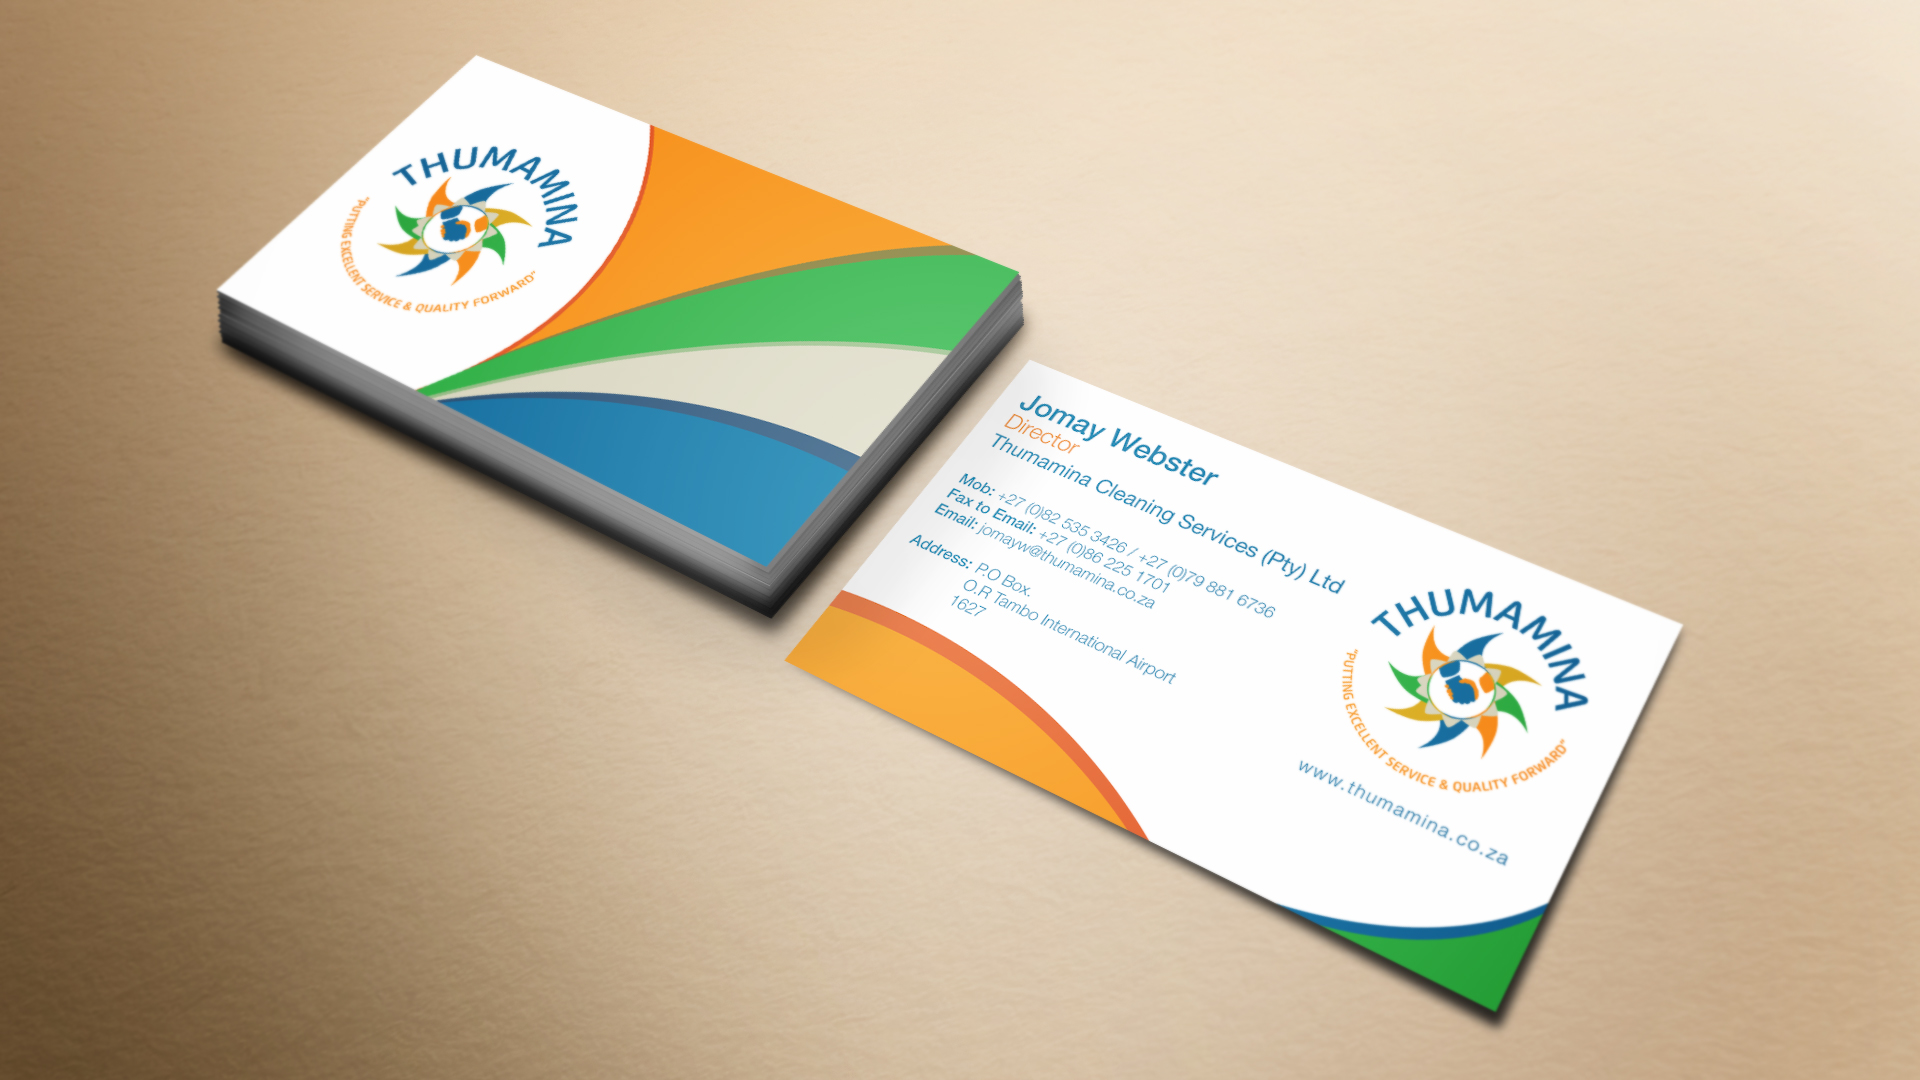 thumathina-businesscard